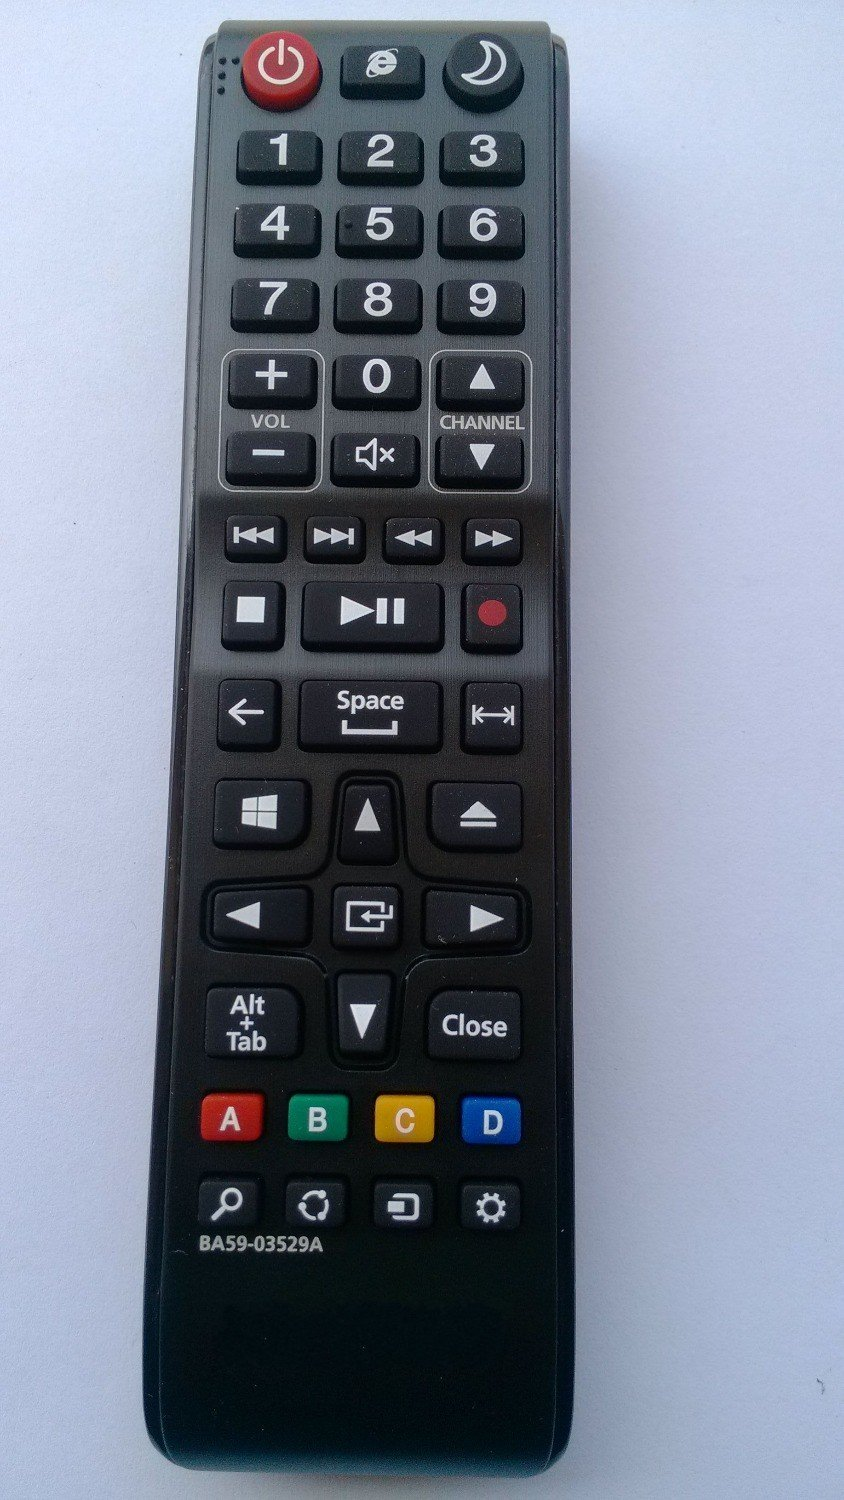 BA59-03529A REMOTE CONTROL FOR SAMSUNG LCD LED TV